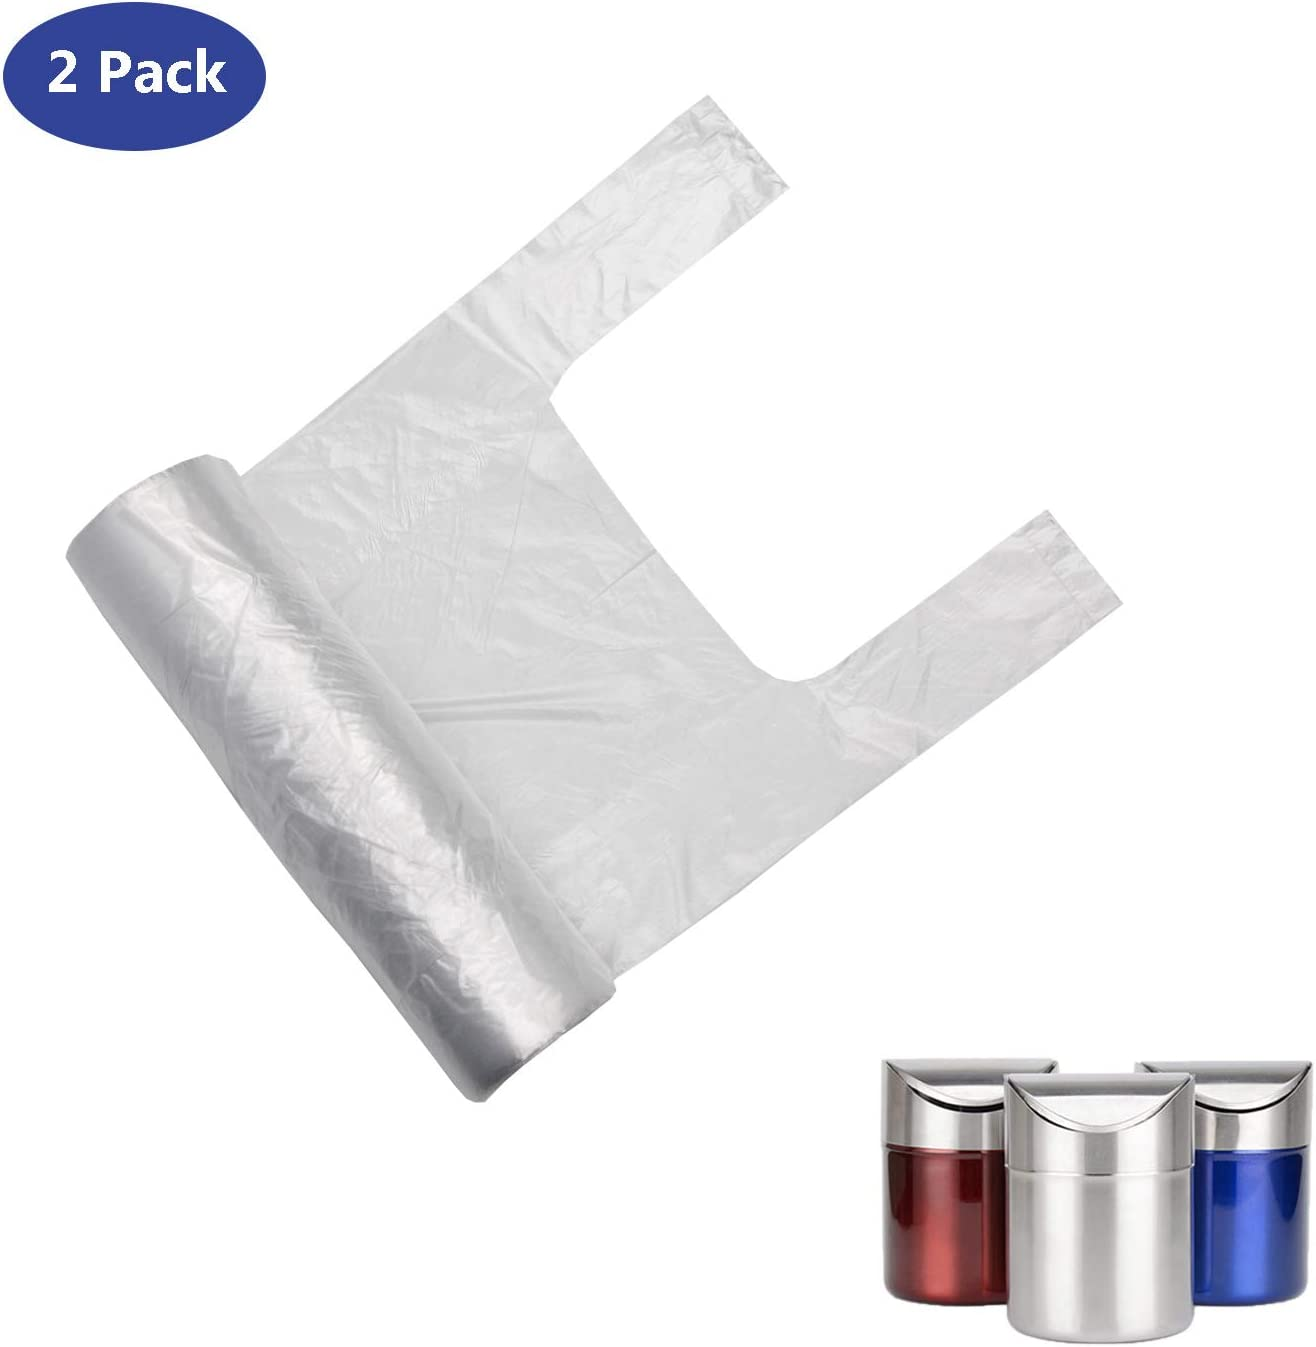 2 Pack Trash Bags for Countertop Mini Trash Can, 1.5 Liter Trash Bag for Small Tiny Trash Bin Can(Clear, 200 Counts)